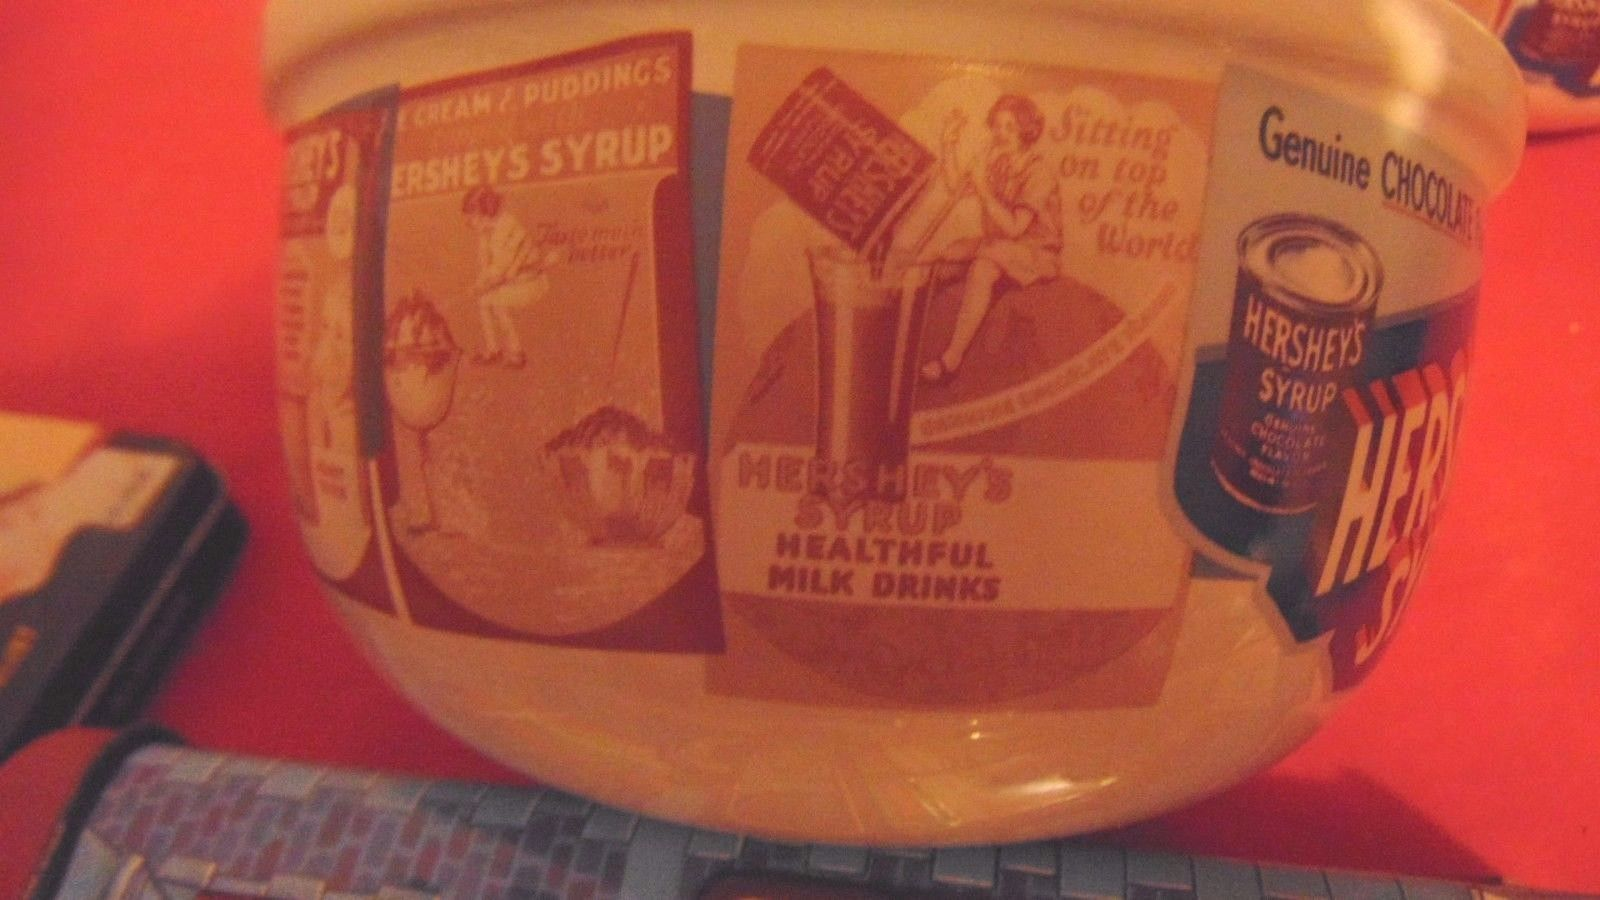 Hersheys Tins-Soup/Cereal Bowls-3 Each-Houston Harvest Gift Candy Store-Candy image 12